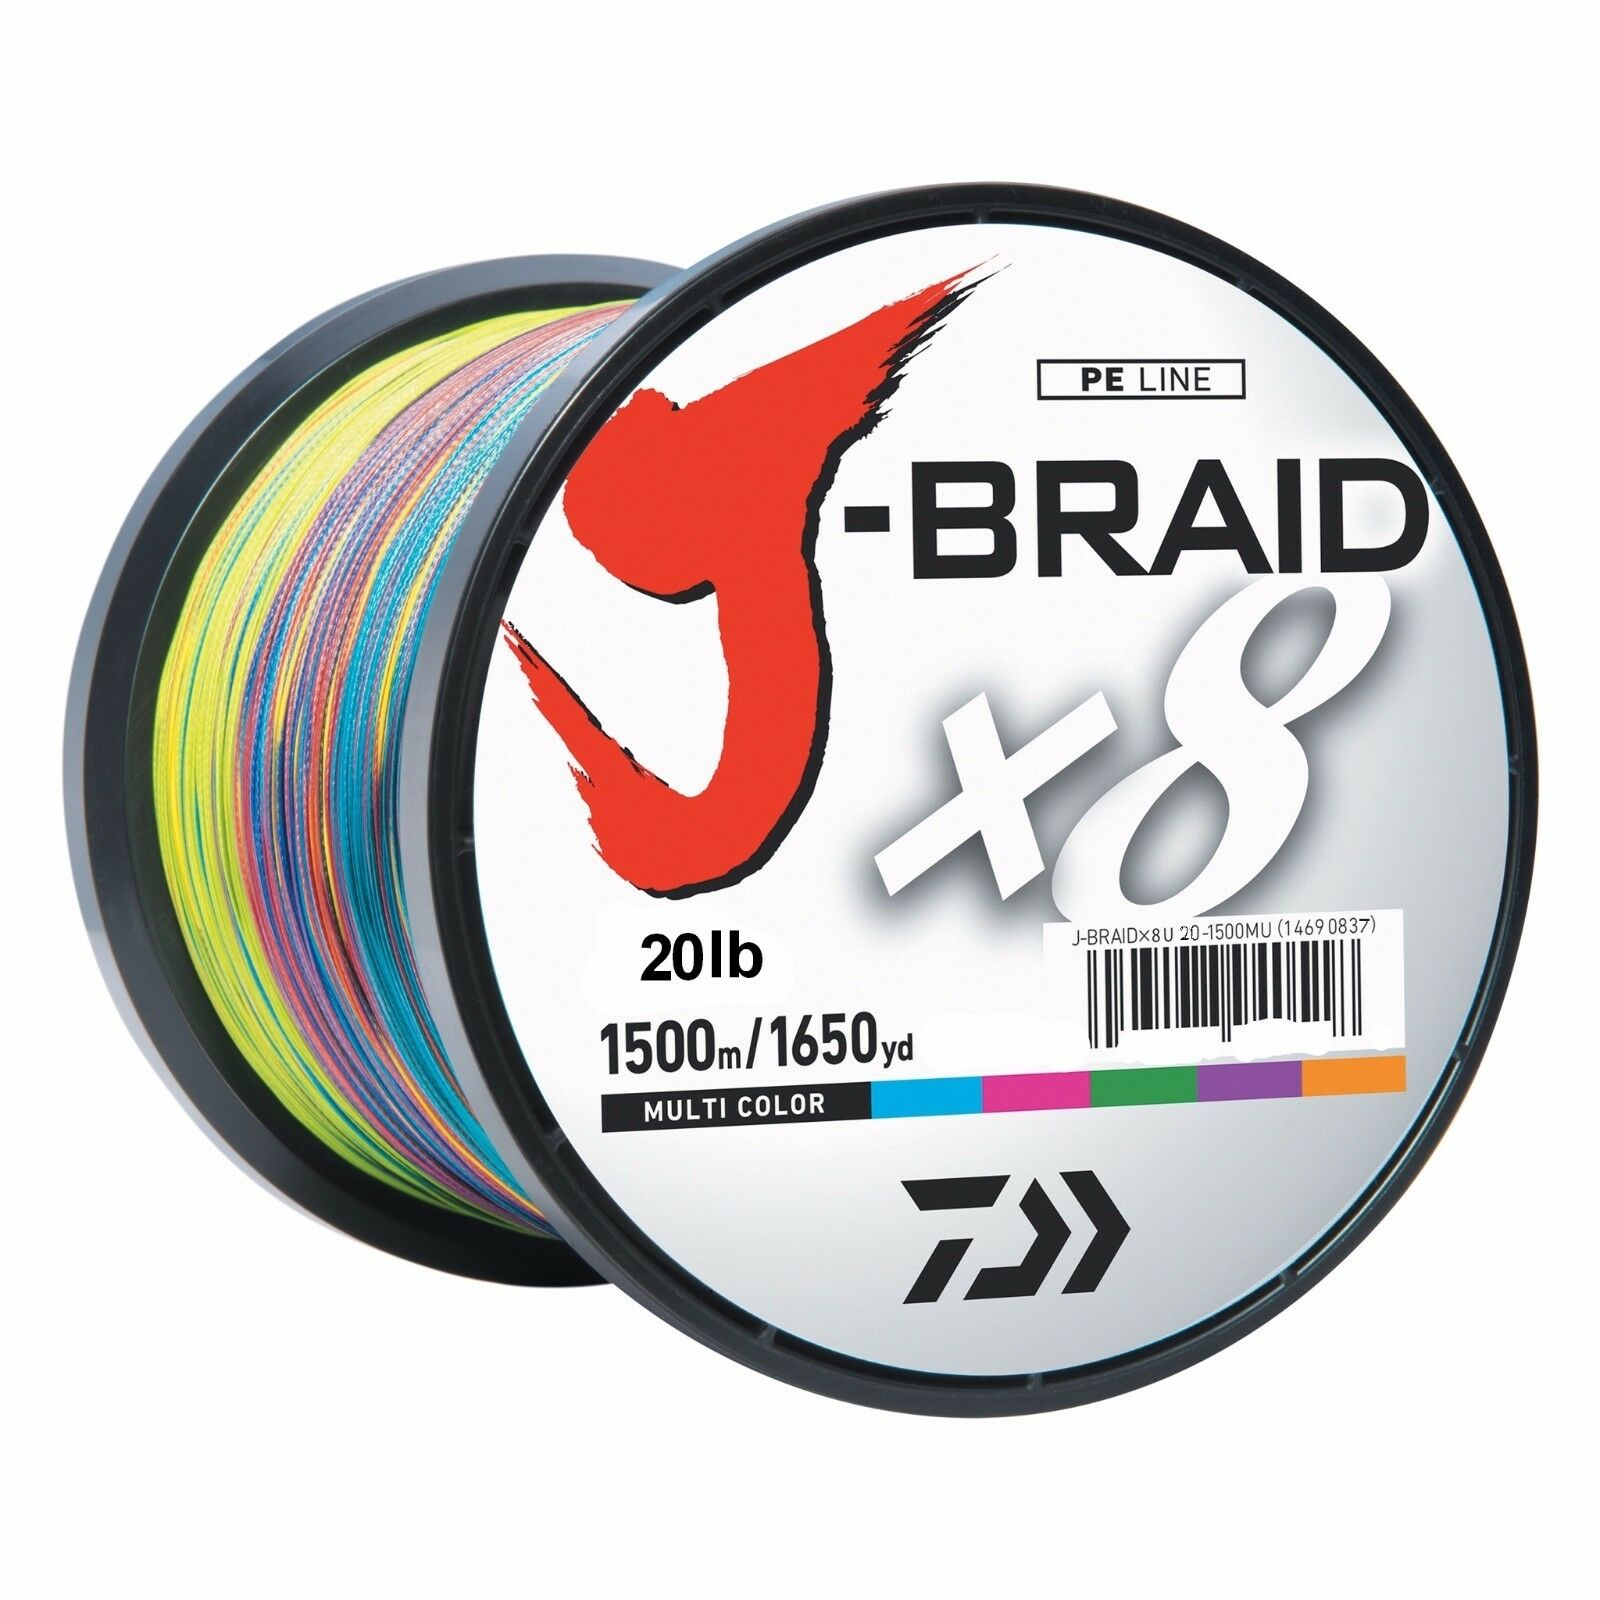 Daiwa J-BRAID Braided MULTI-COLOR Line 20lb 1650yd 1500 Meter 20-1500MU